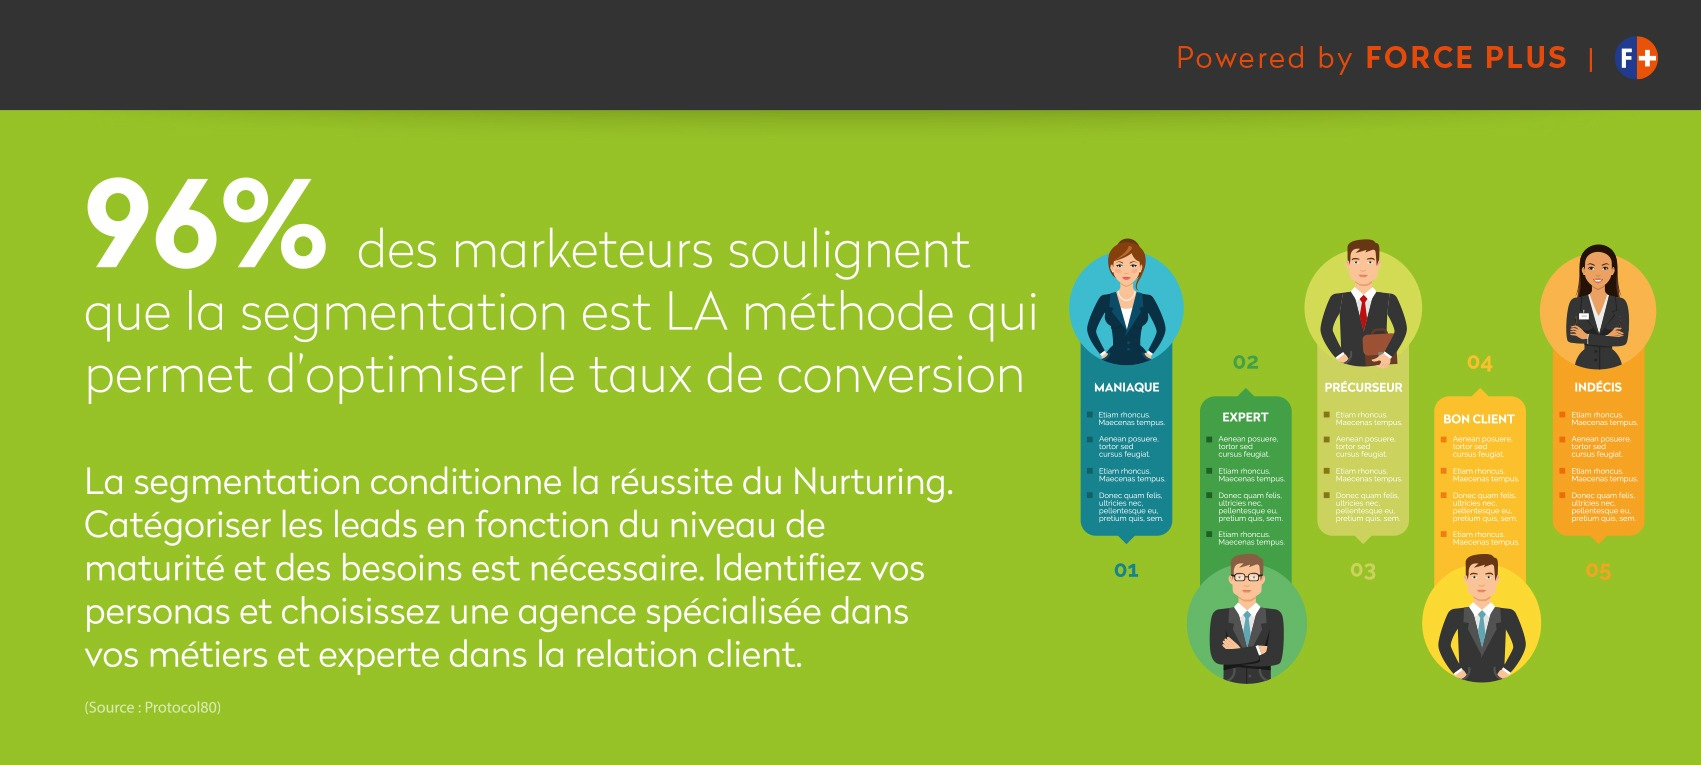 segmentation et fichier de prospection | FORCE PLUS